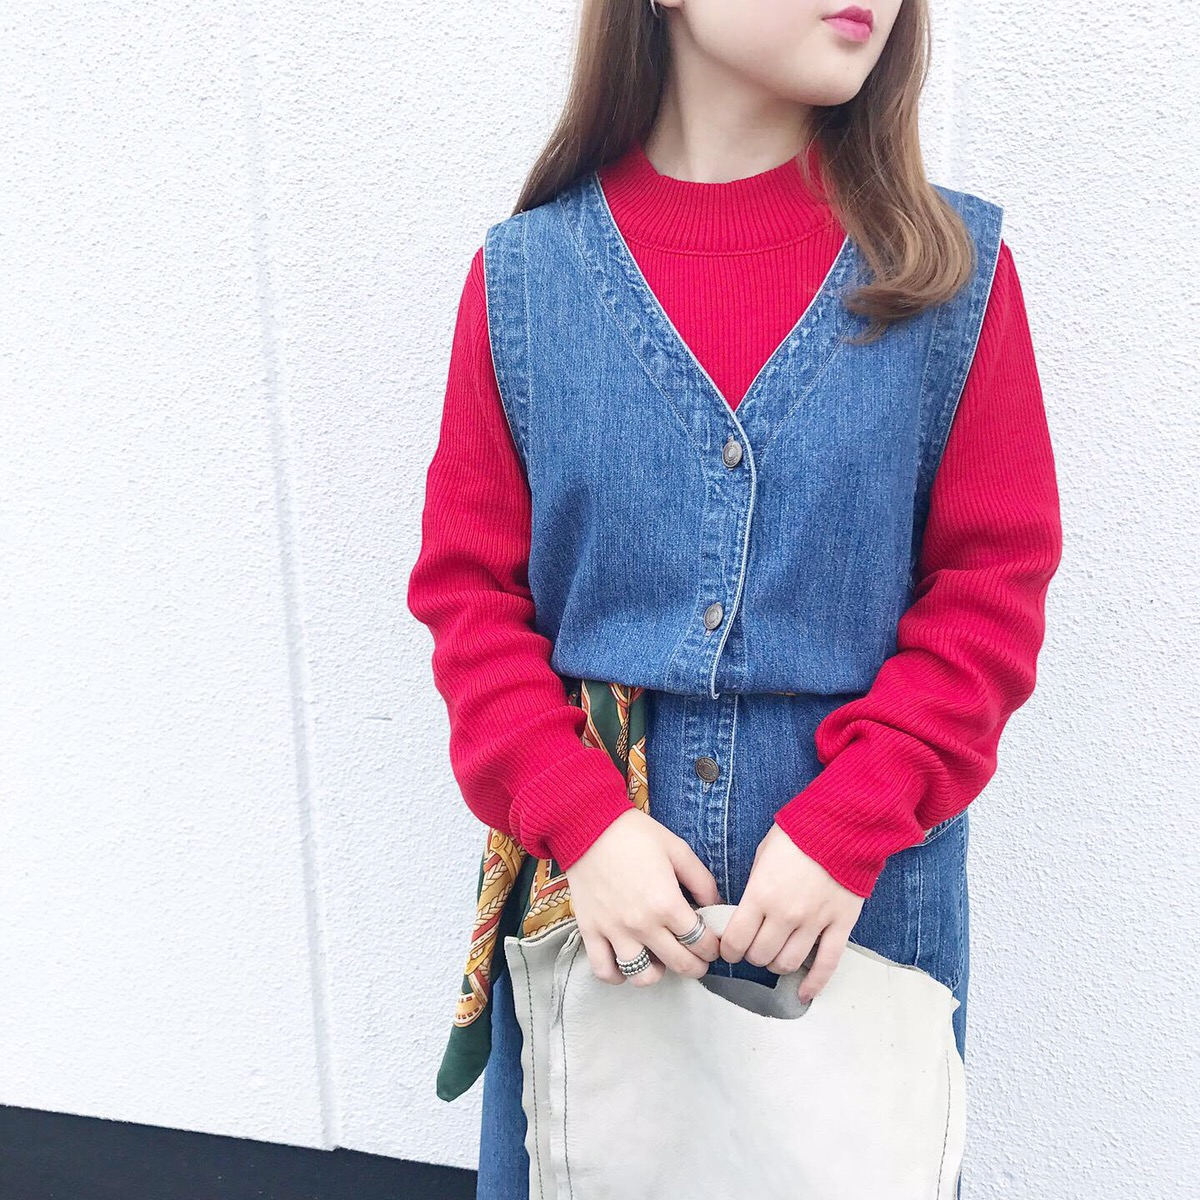 90's mock neck sweater made in USA -dead stock- | レザー トート バッグ バクスター イタリア製